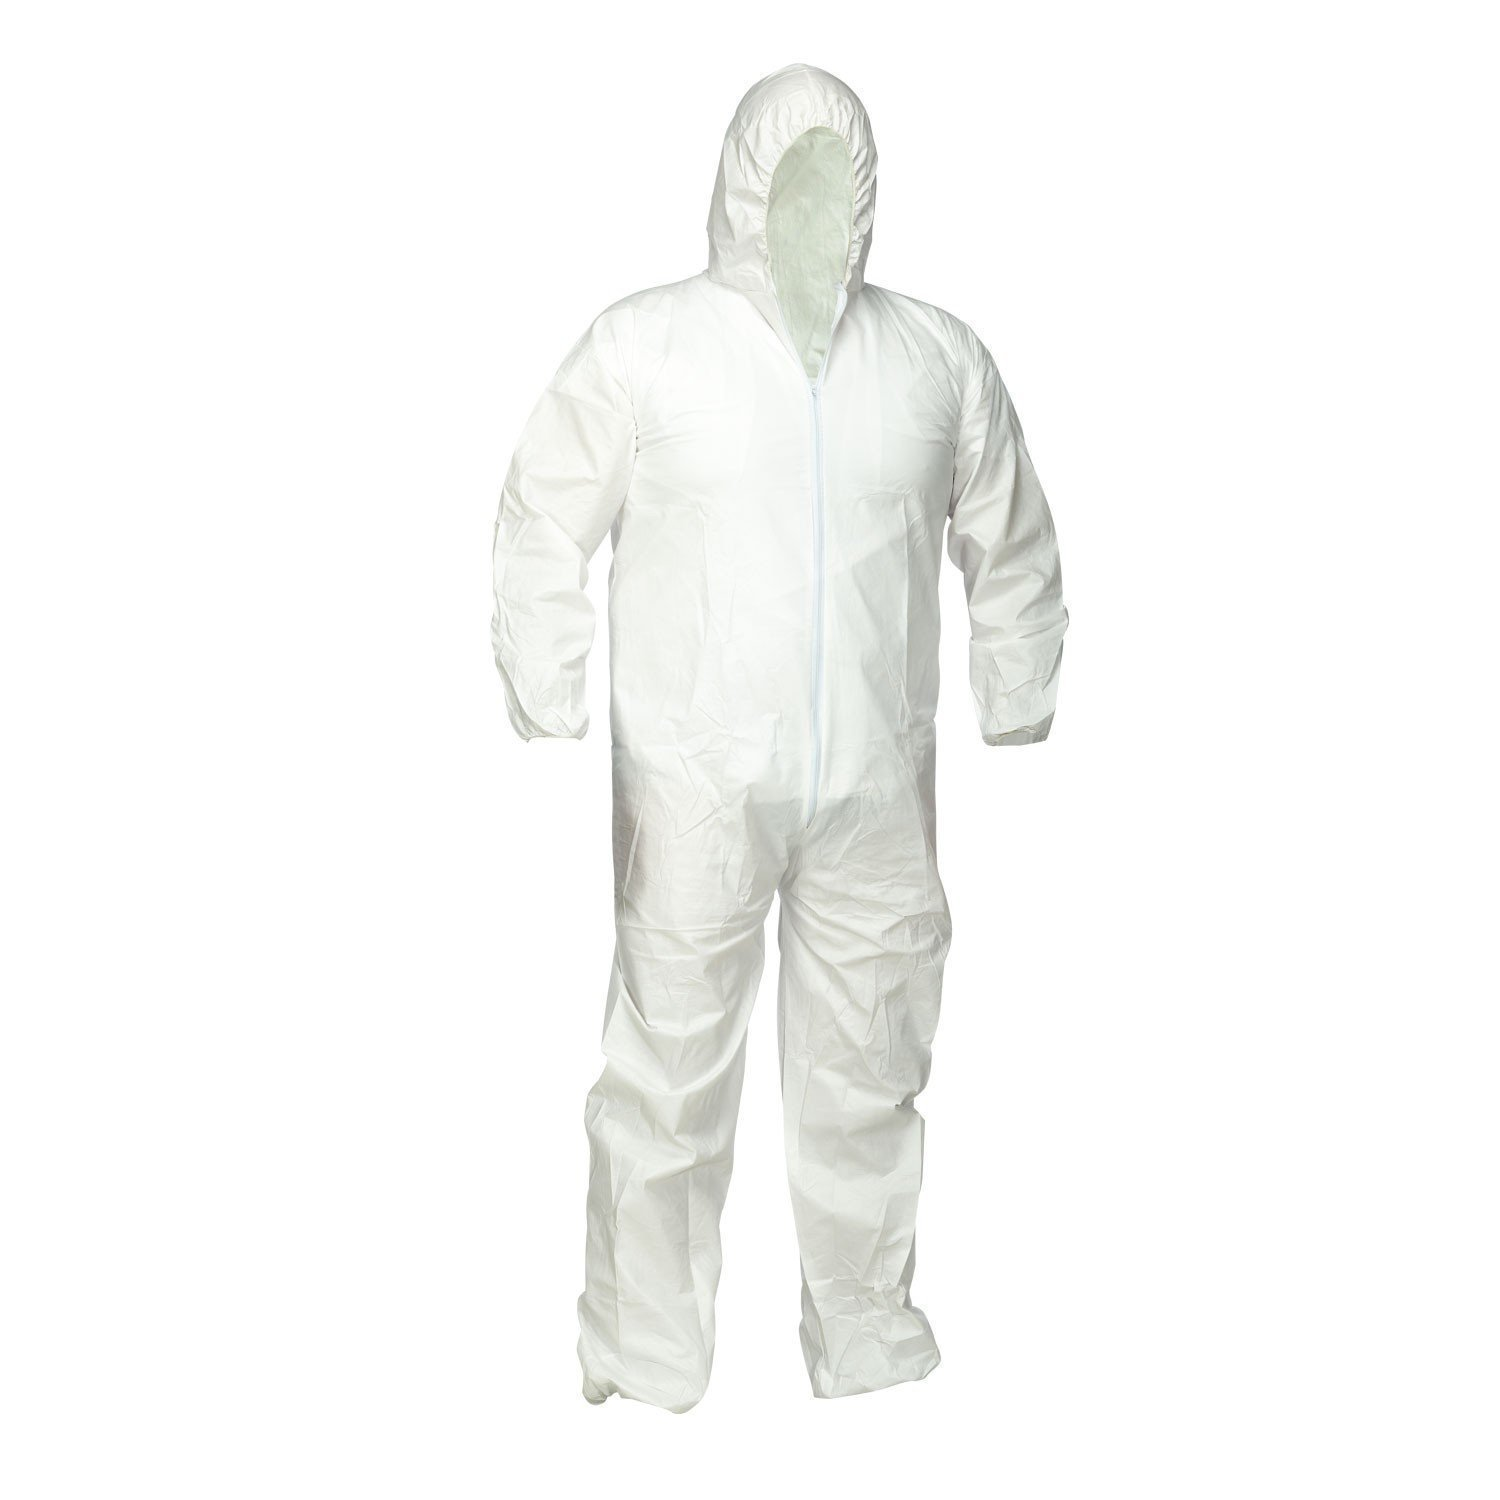 Disposable Coveralls - Tyvek (Large)